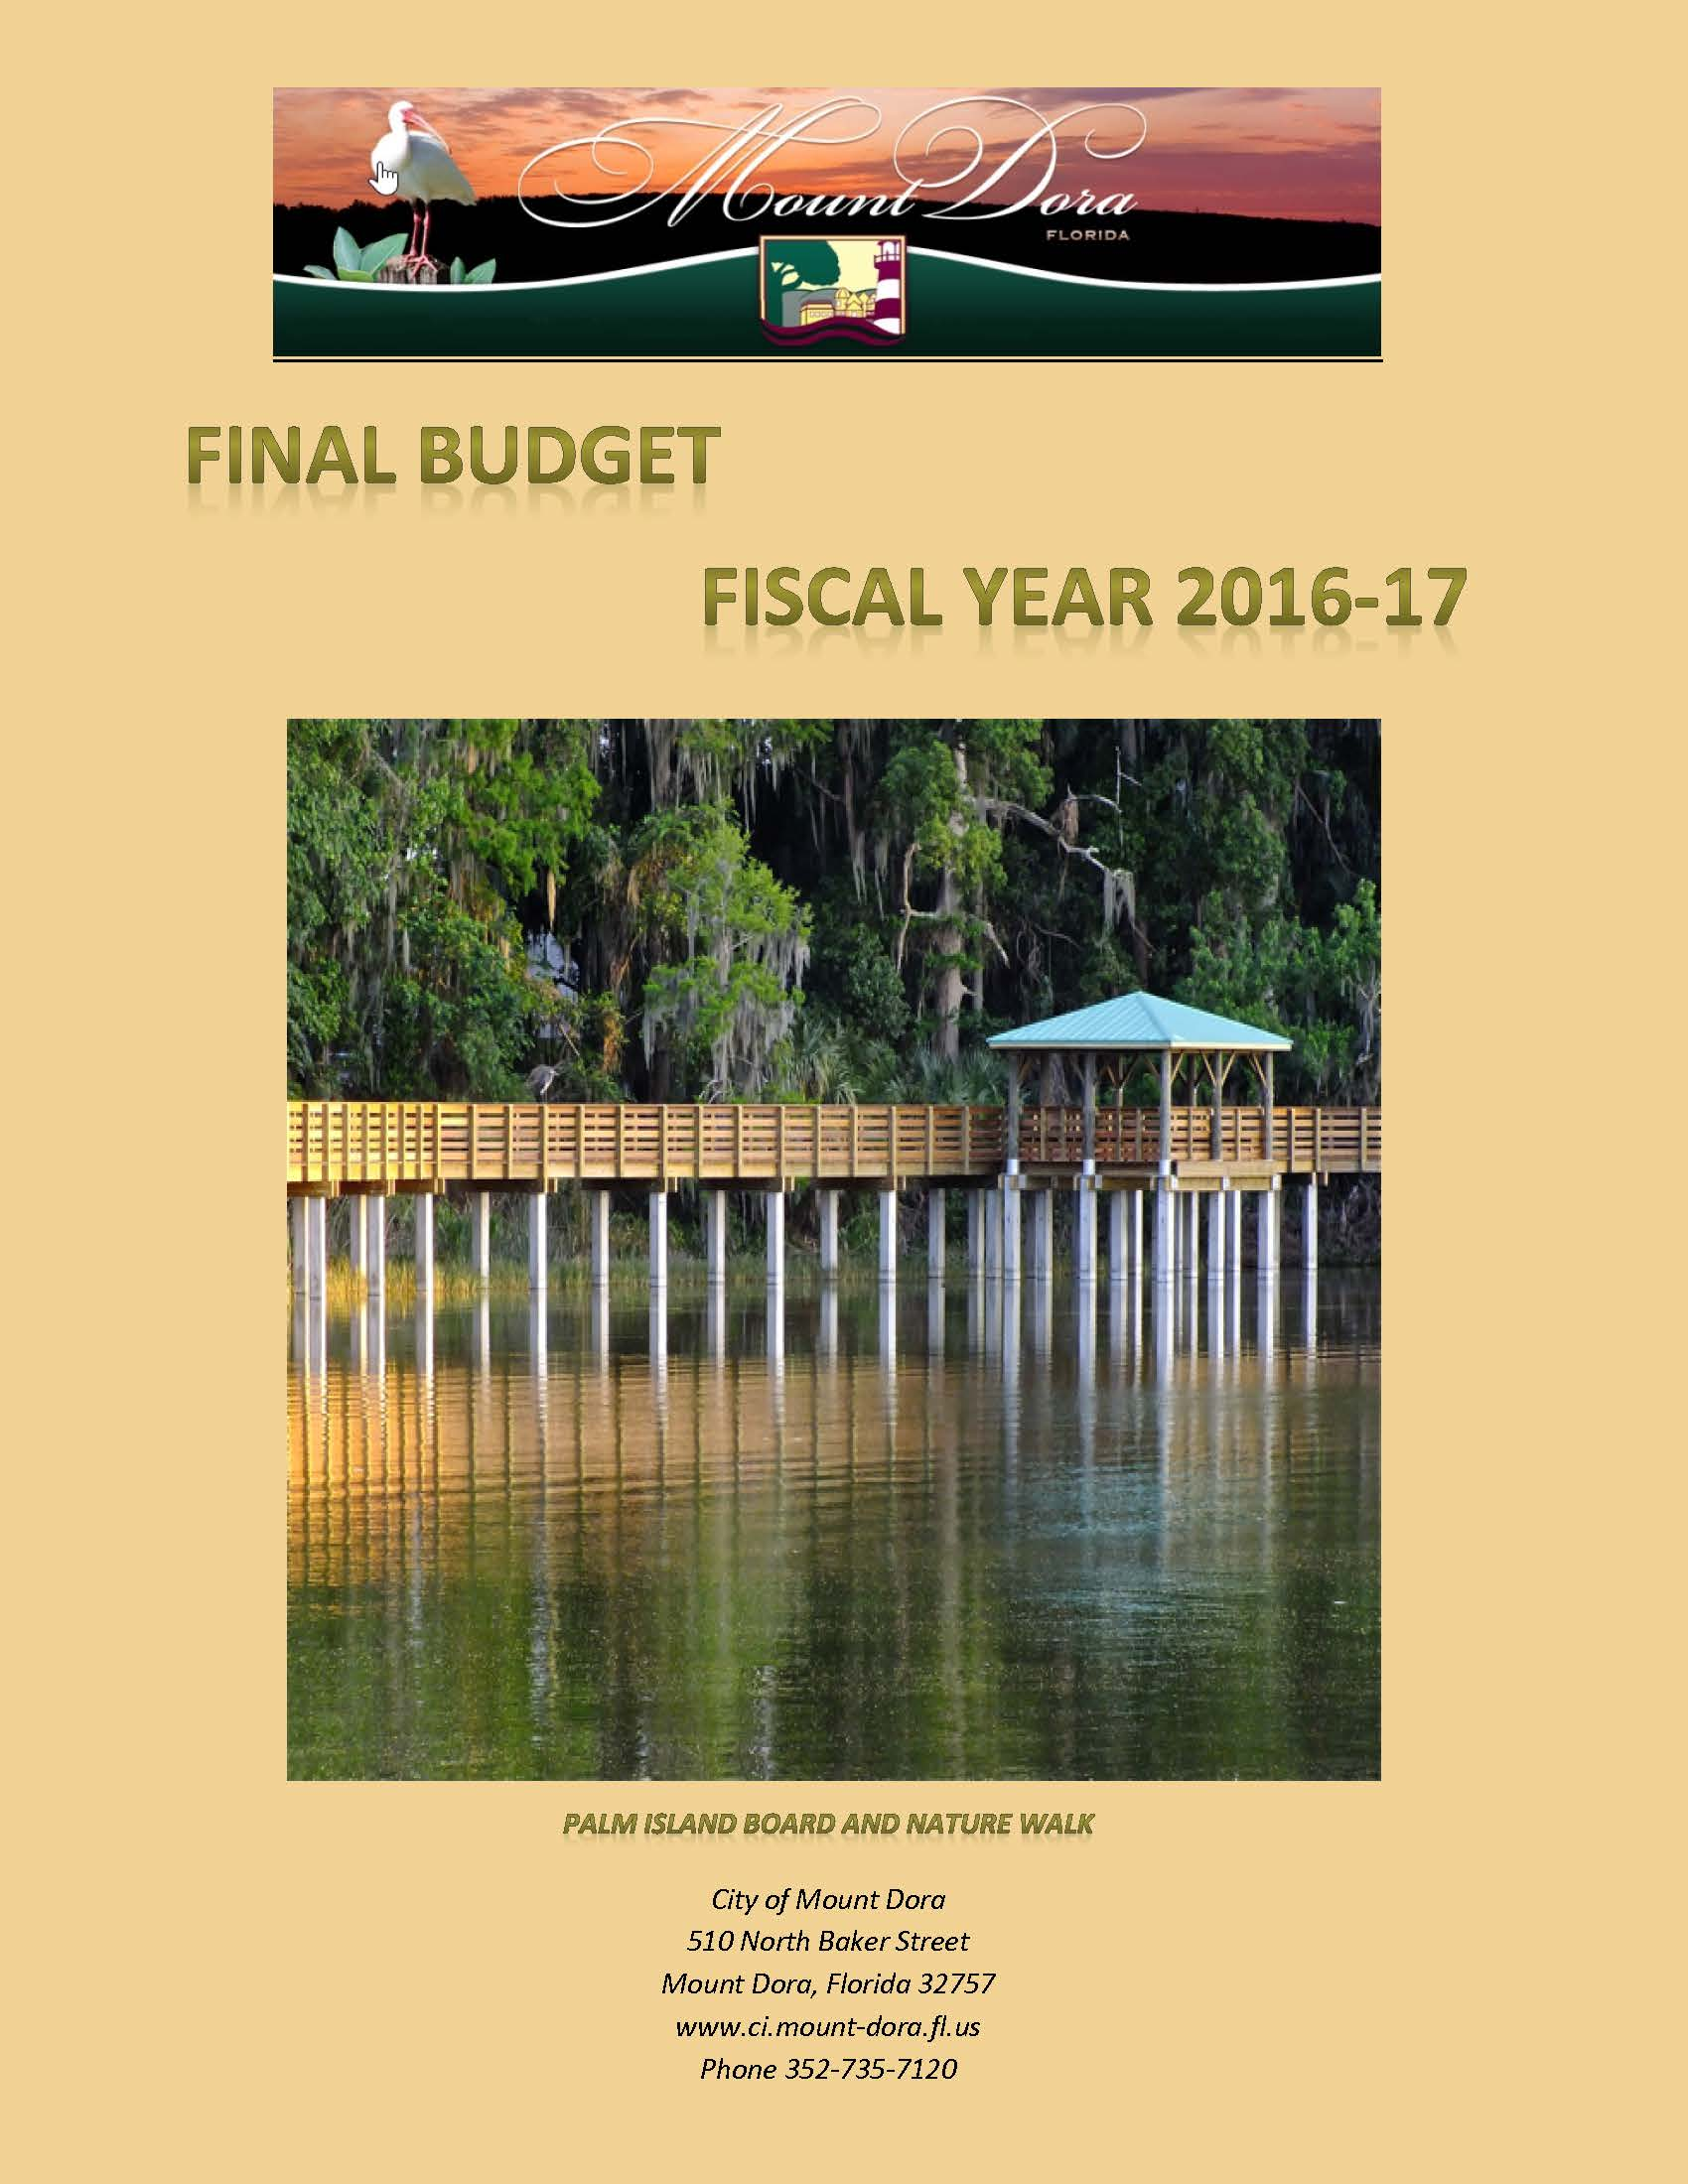 Fiscal Year 2016-17 Budget Document